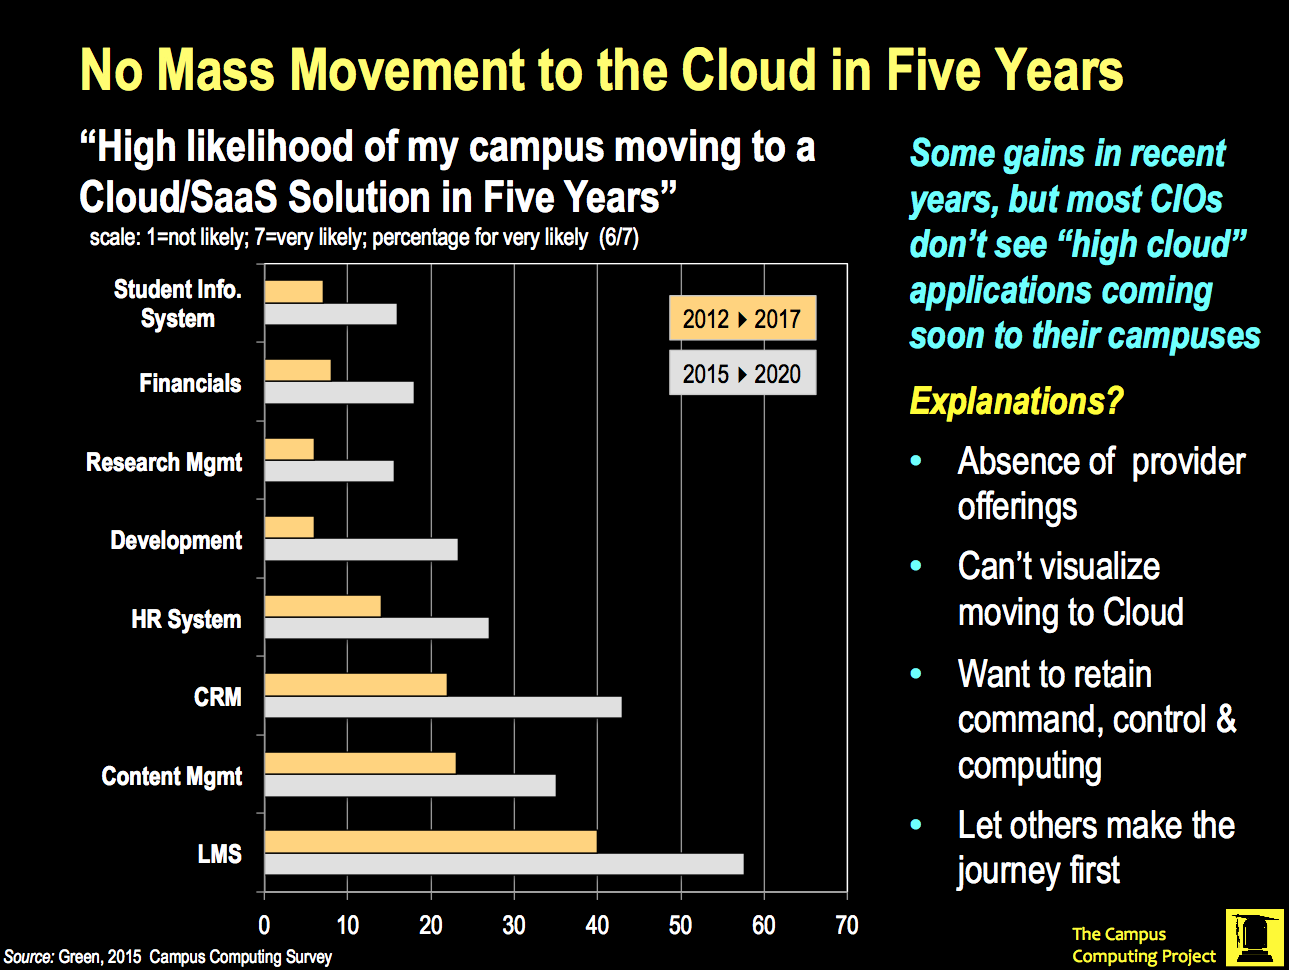 No Mass Movement to the Cloud in Five Years